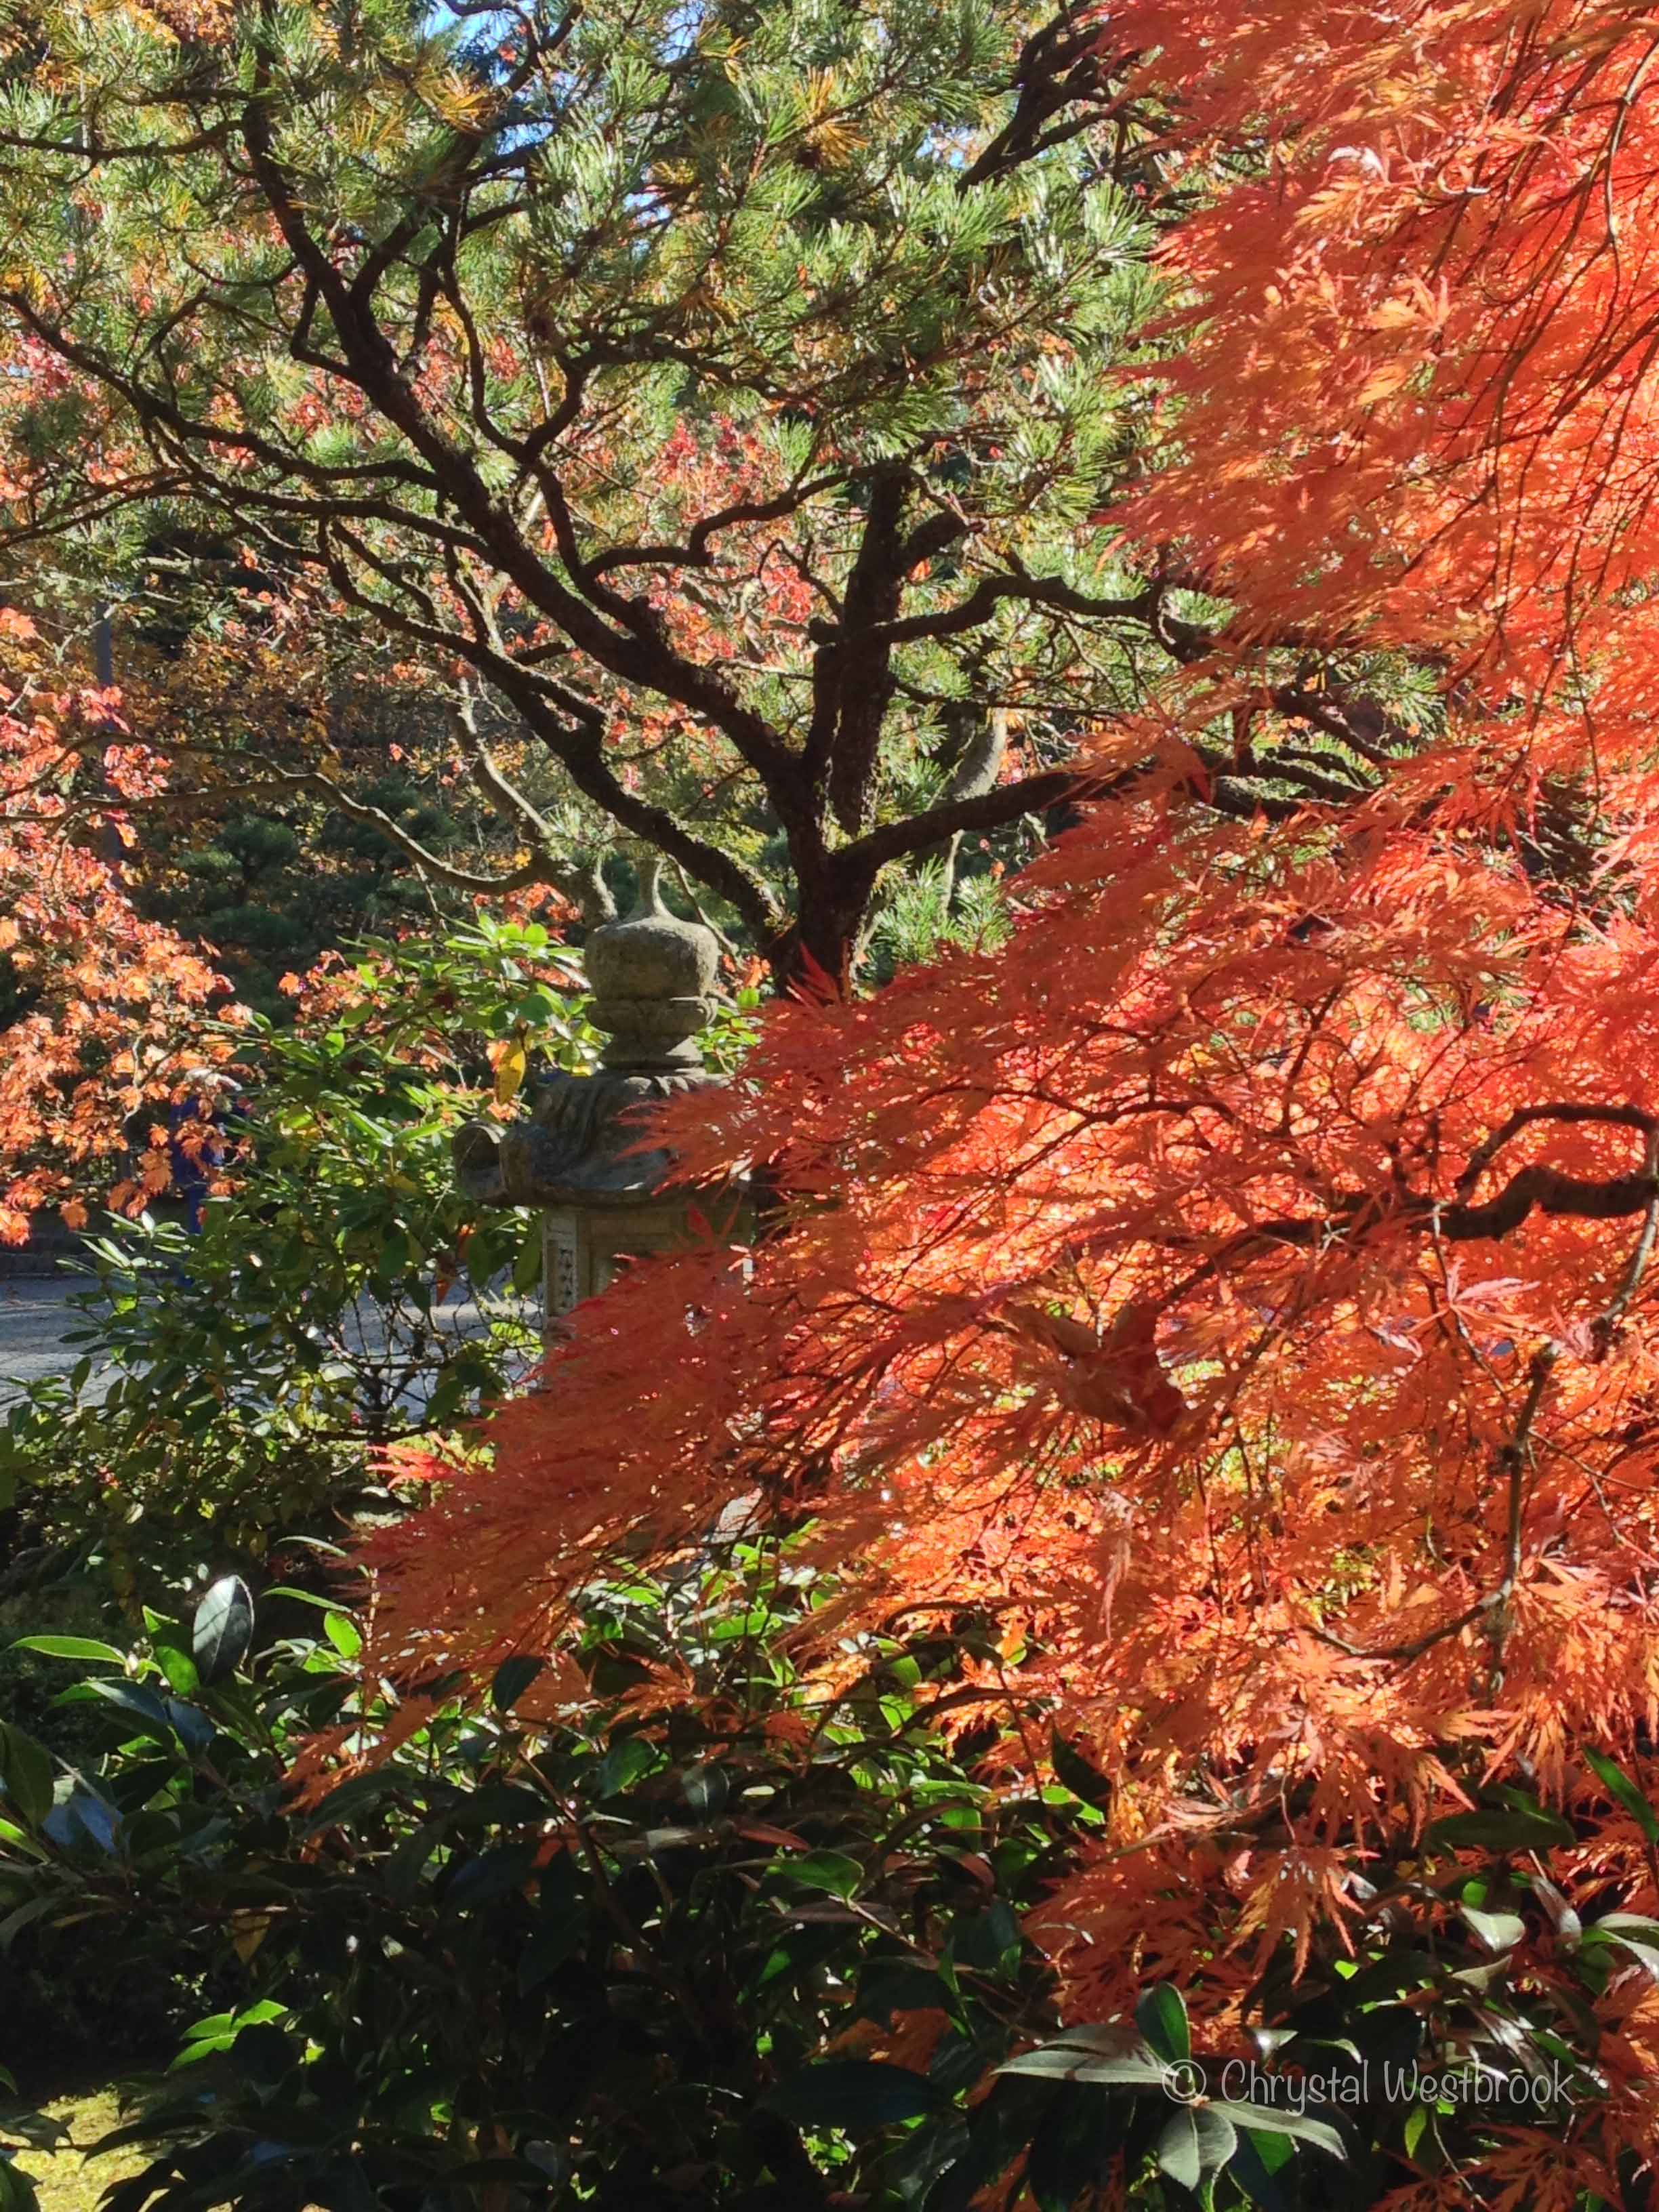 [IMAGE] Sunlit Japanese maple tree in fall